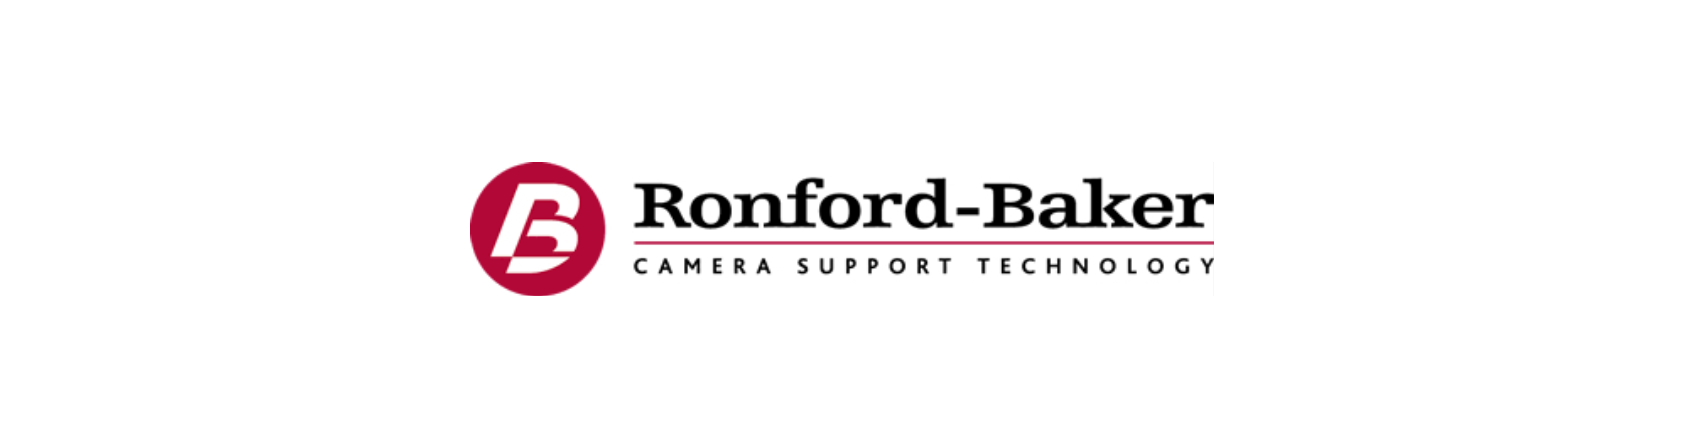 RONFORD BAKER LOG CATTS CAMERA